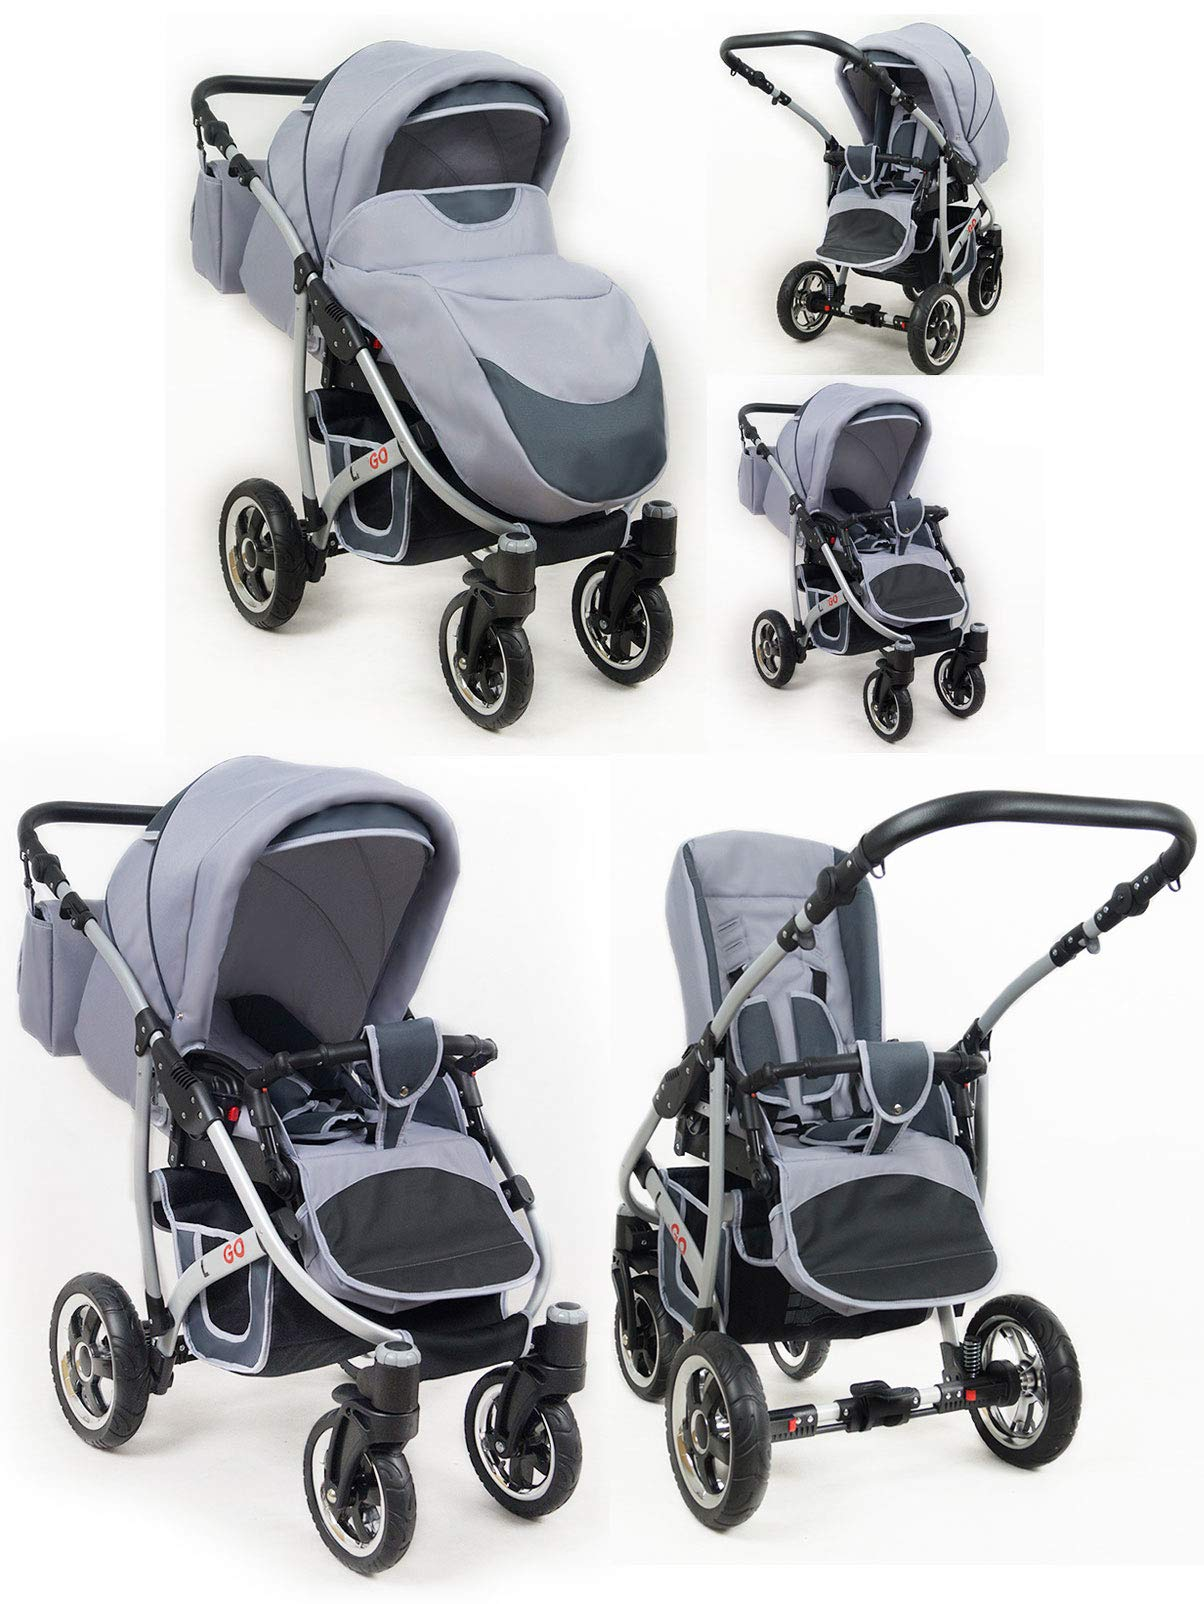 SaintBaby Stroller Pram 2in1 3in1 Set All in one Baby seat Buggy Pushchair New L-GO Black 3in1 with Baby seat SaintBaby 3in1 or 2in1 Selectable. At 3in1 you will also receive the car seat (baby seat). Of course you get the baby tub (classic pram) as well as the buggy attachment (sports seat) no matter if 2in1 or 3in1. The car naturally complies with the EU safety standard EN1888. During production and before shipment, each wagon is carefully inspected so that you can be sure you have one of the best wagons. Saintbaby stands for all-in-one carefree packages, so you will also receive a diaper bag in the same colour as the car as well as rain and insect protection free of charge. With all the colours of this pram you will find the pram of your dreams. 6